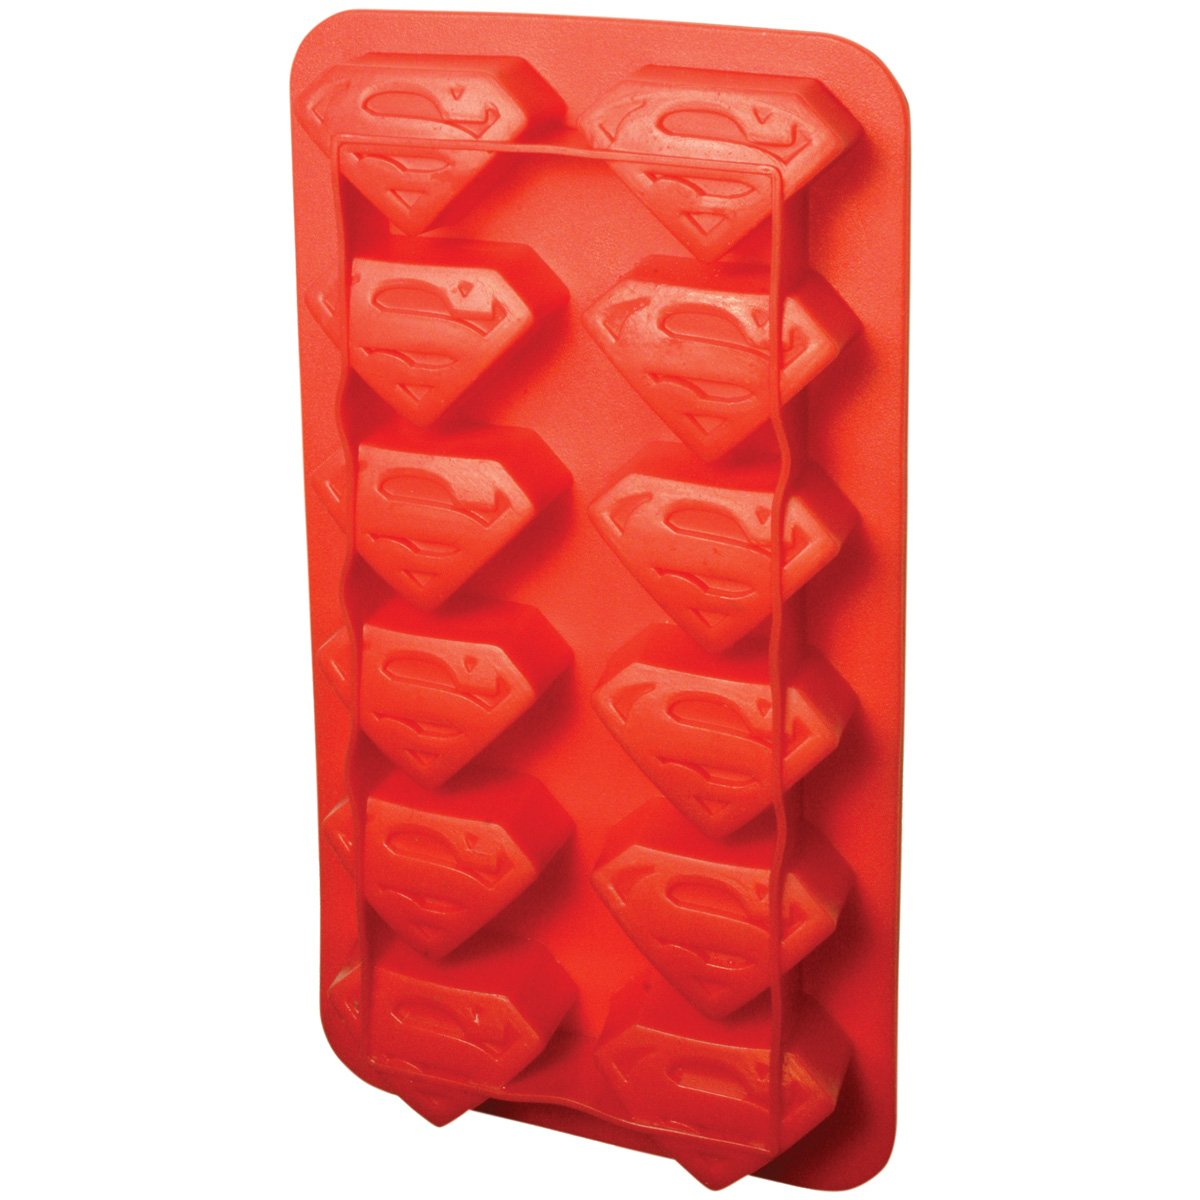 ICUP DC Comics Superman Ice Cube Tray ICUP Inc. 7401